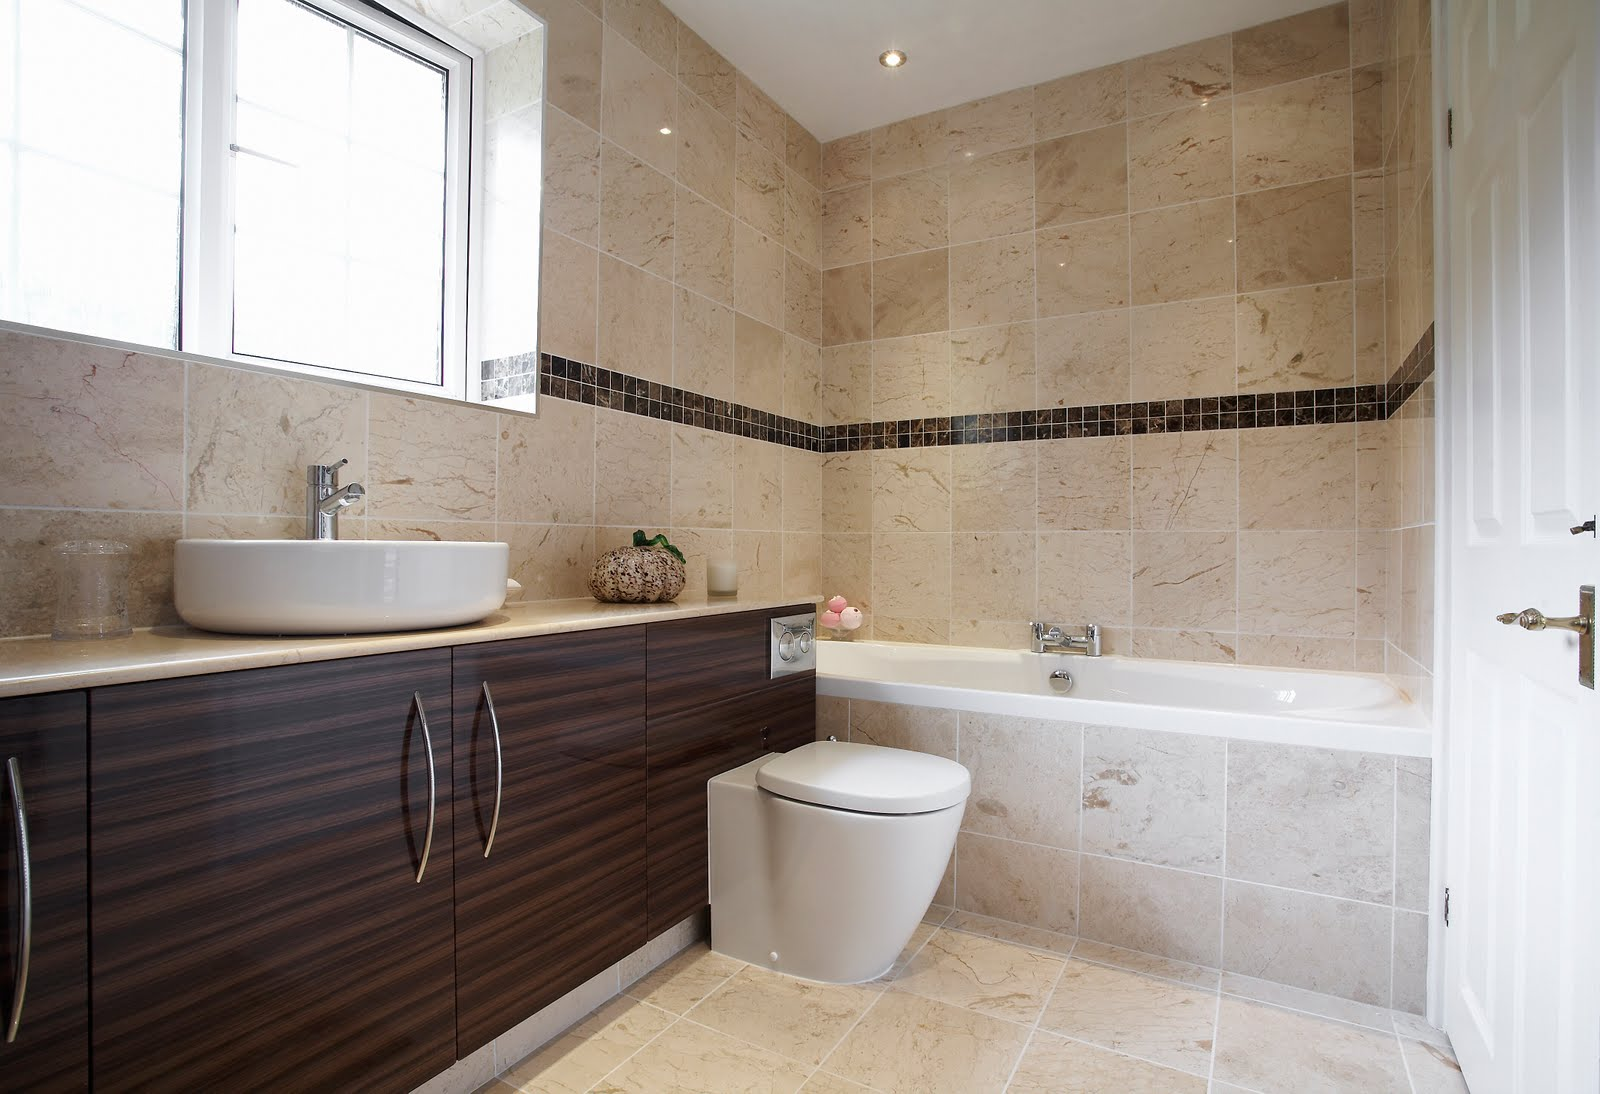 Cymru kitchens ltd cymru kitchens bathrooms for Bathroom ideas uk